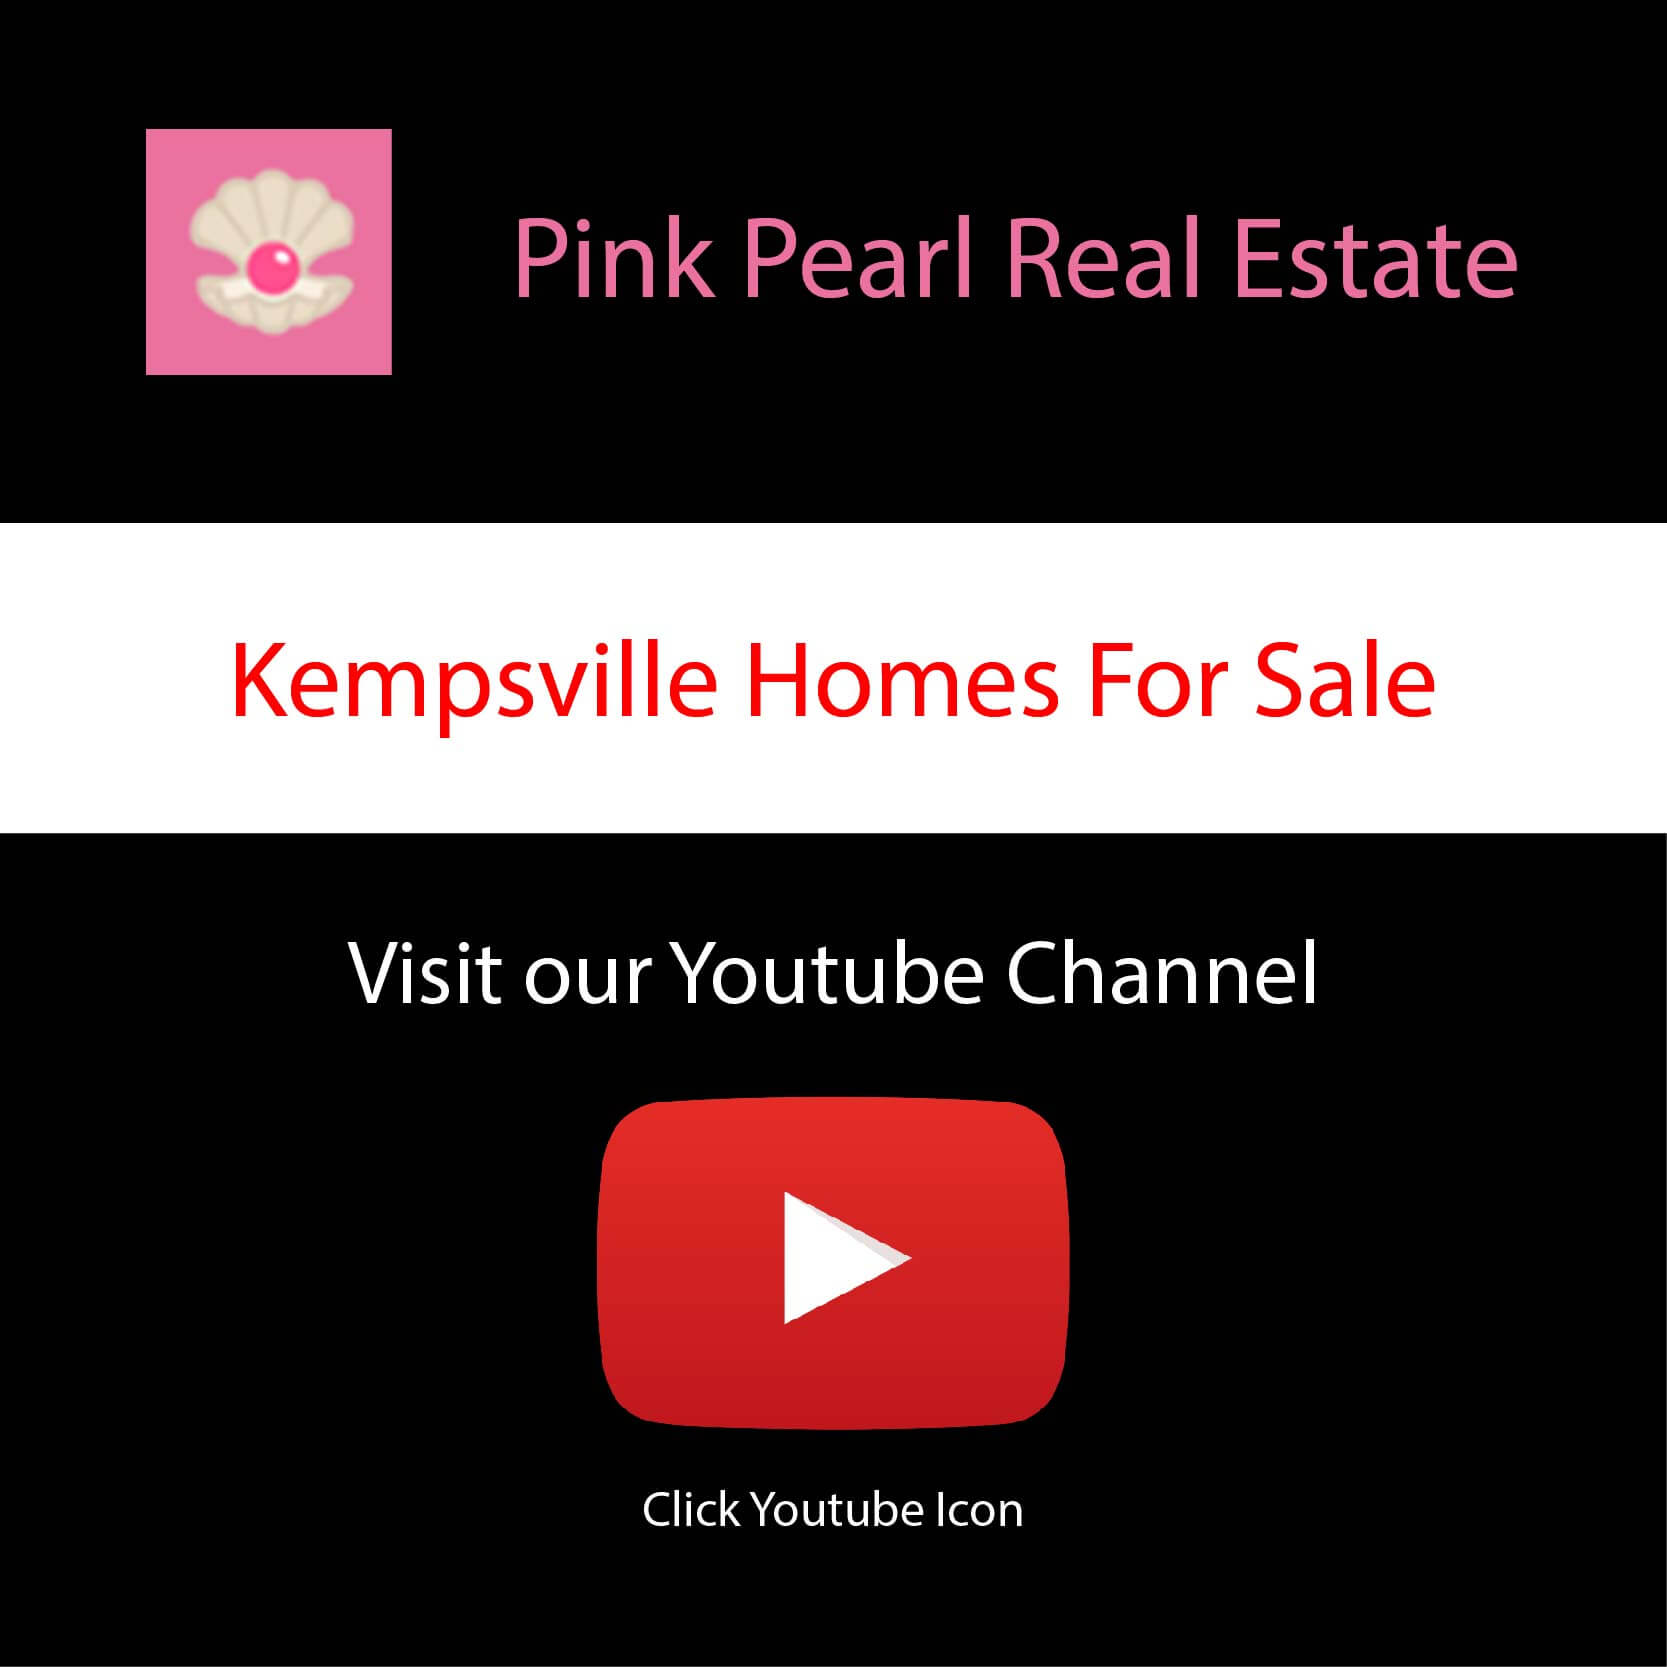 Visit Kempsville Homes For Sale on Youtube